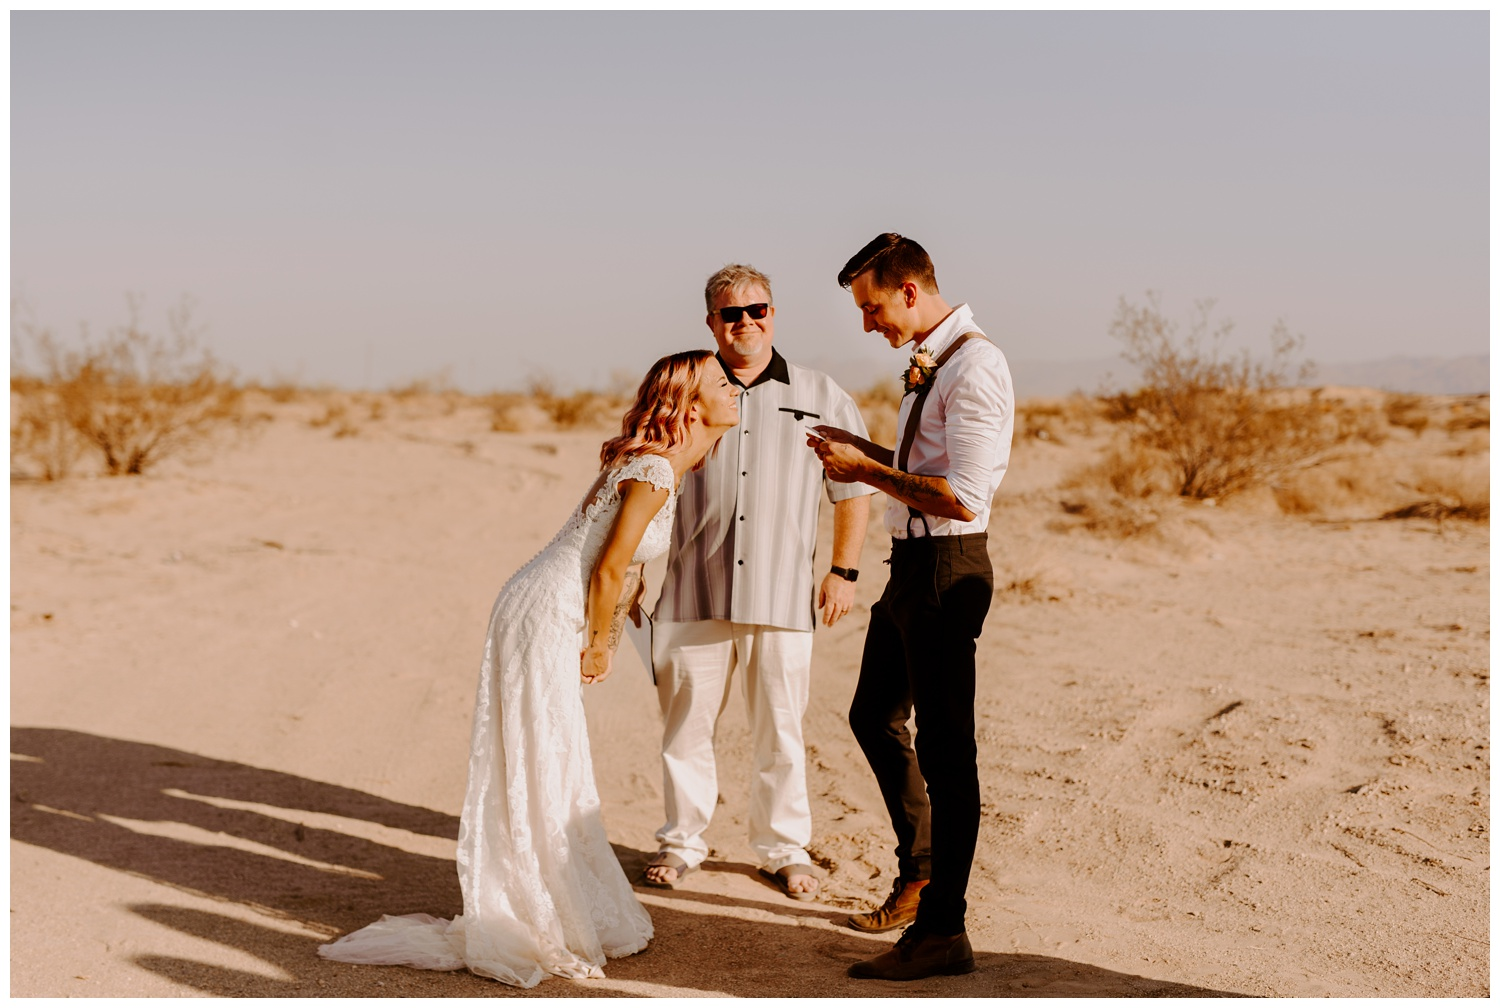 Salvation Mountain Elopement Palm Springs Pink Hair Bride - Jessica Heron Images_0137.jpg